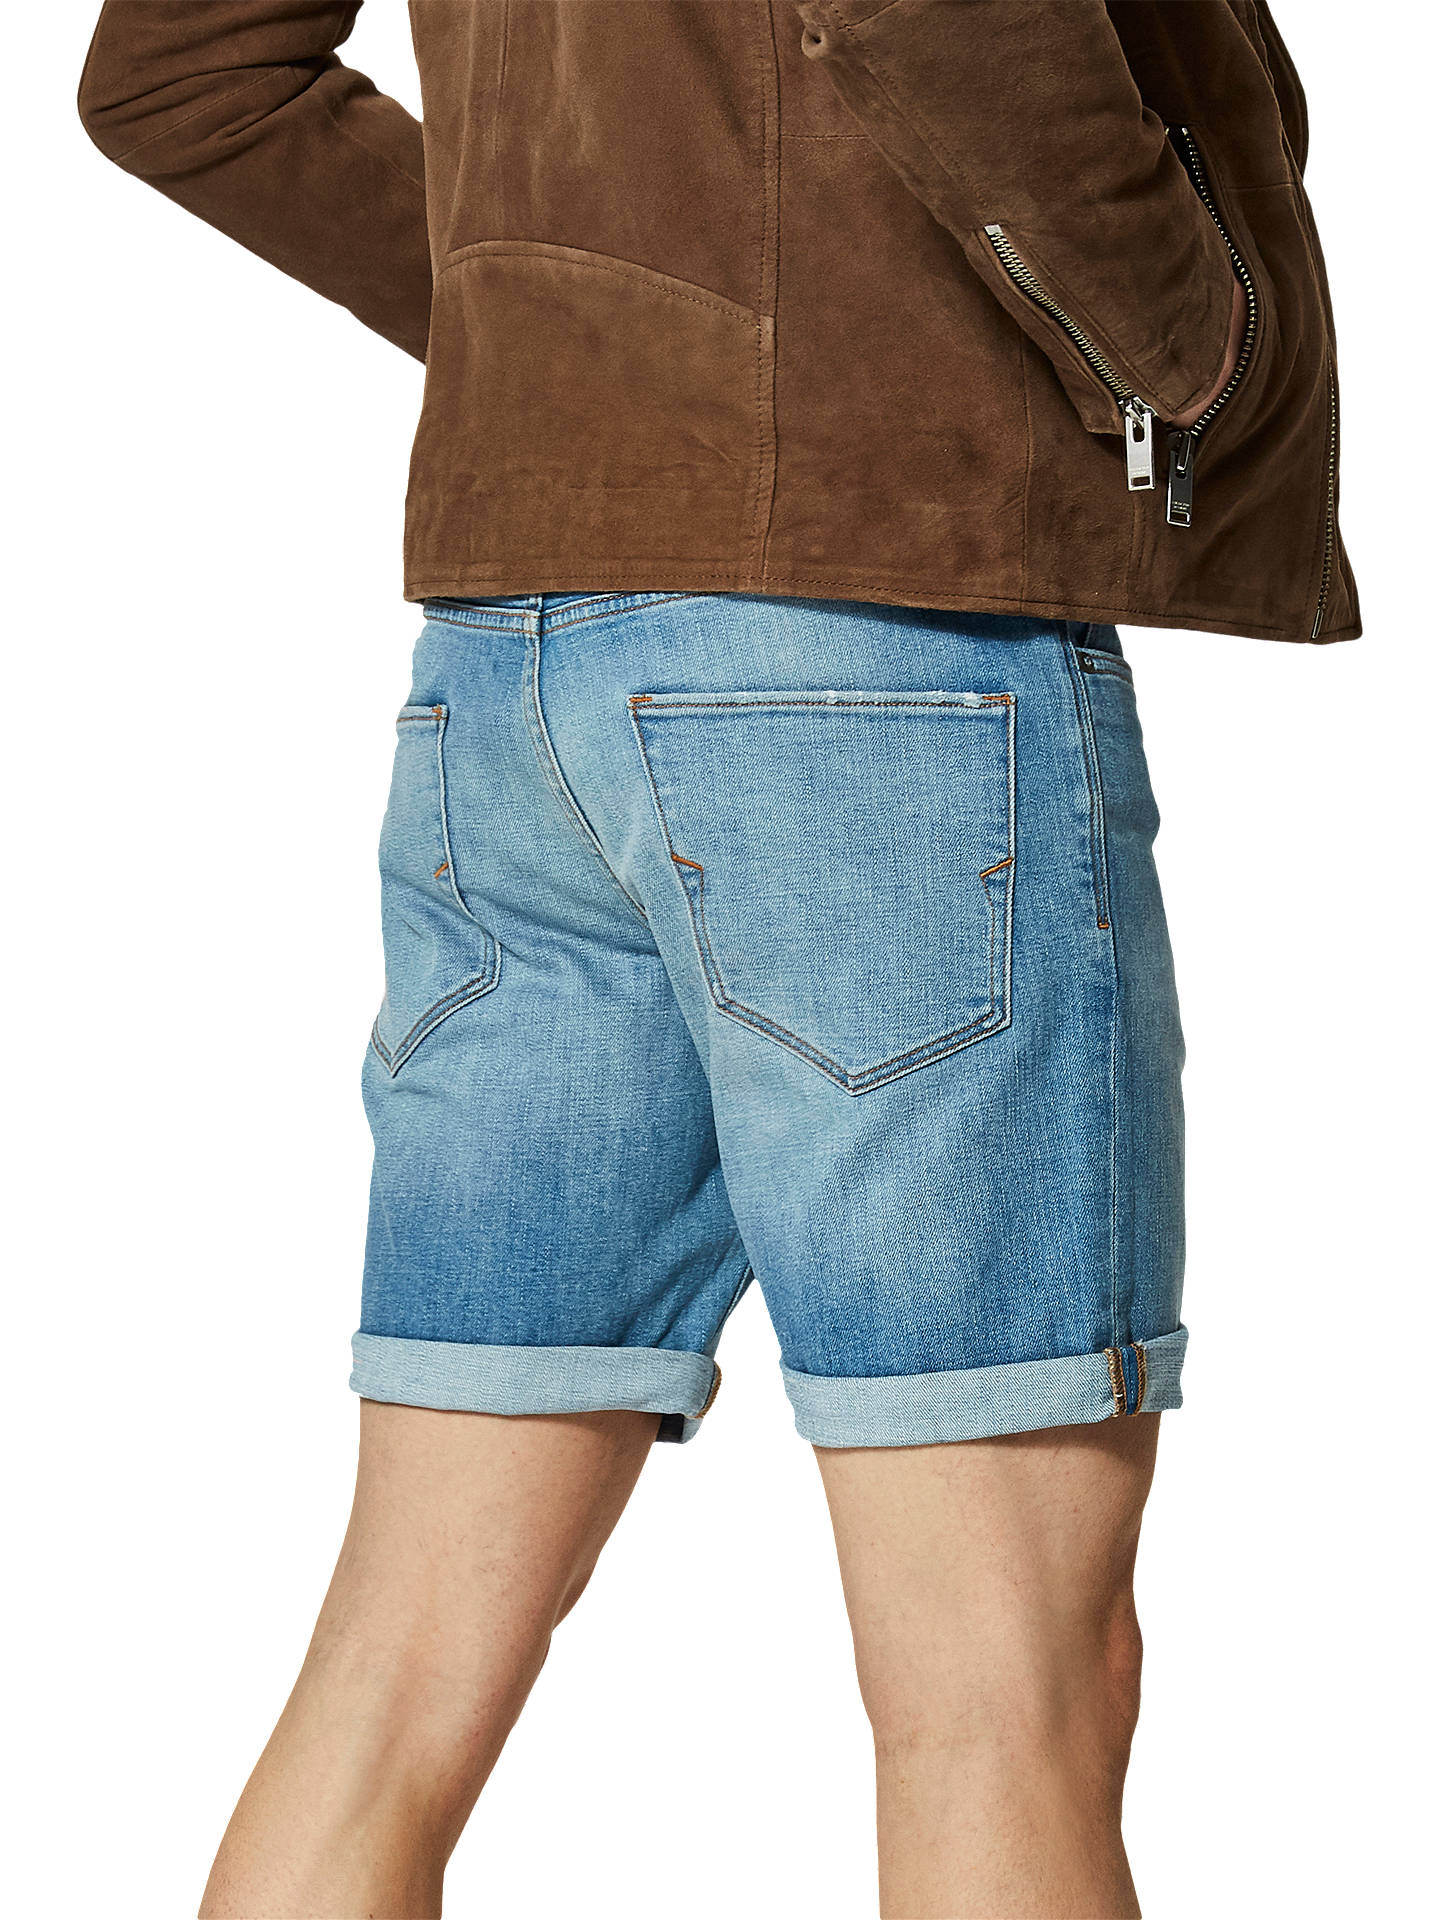 BuySelected Homme Alex Denim Shorts, Light Blue Denim, S Online at johnlewis.com